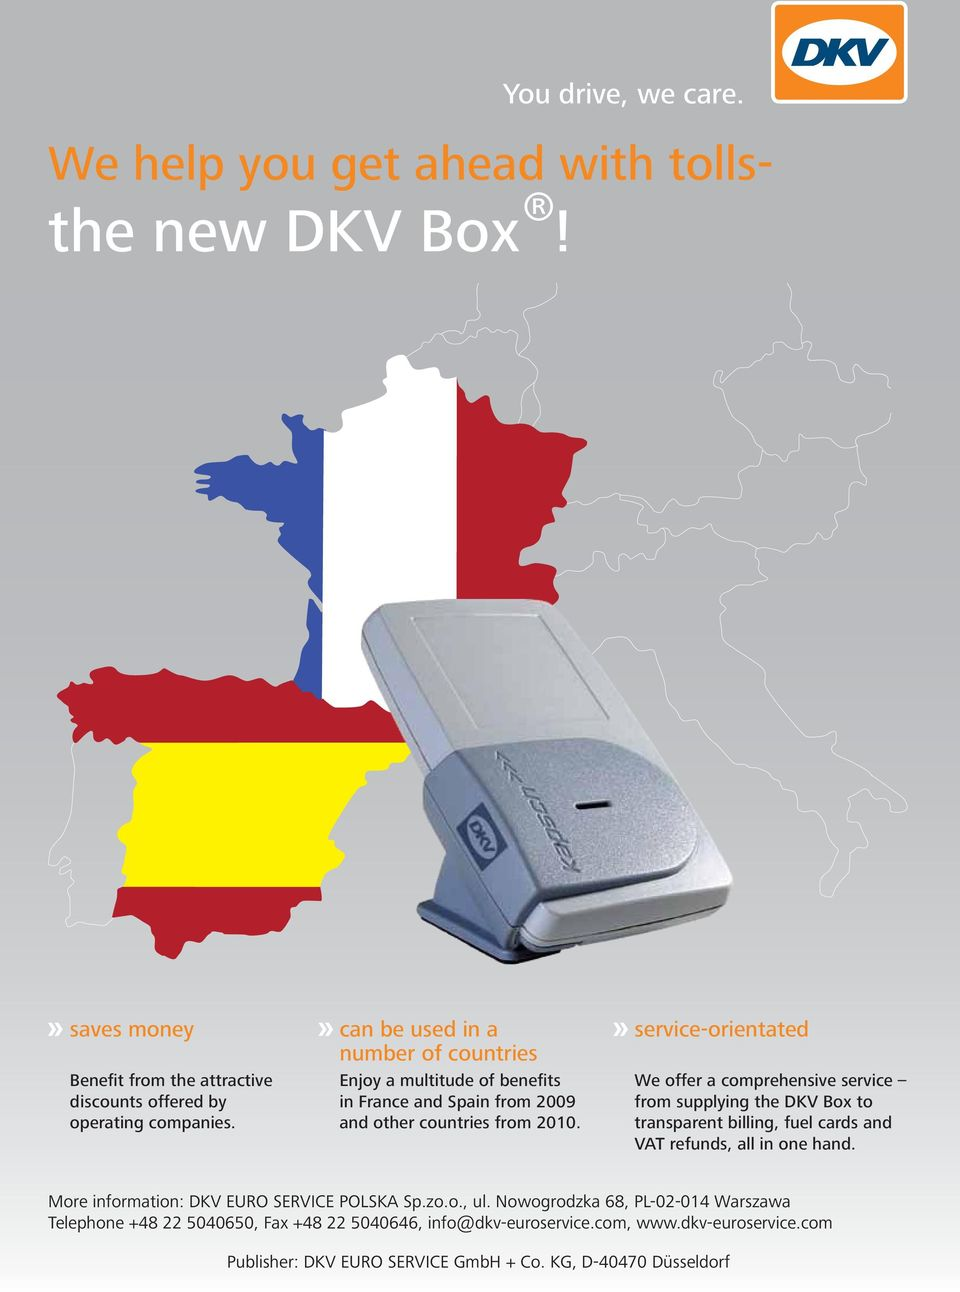 service-orientated We offer a comprehensive service from supplying the DKV Box to transparent billing, fuel cards and VAT refunds, all in one hand.